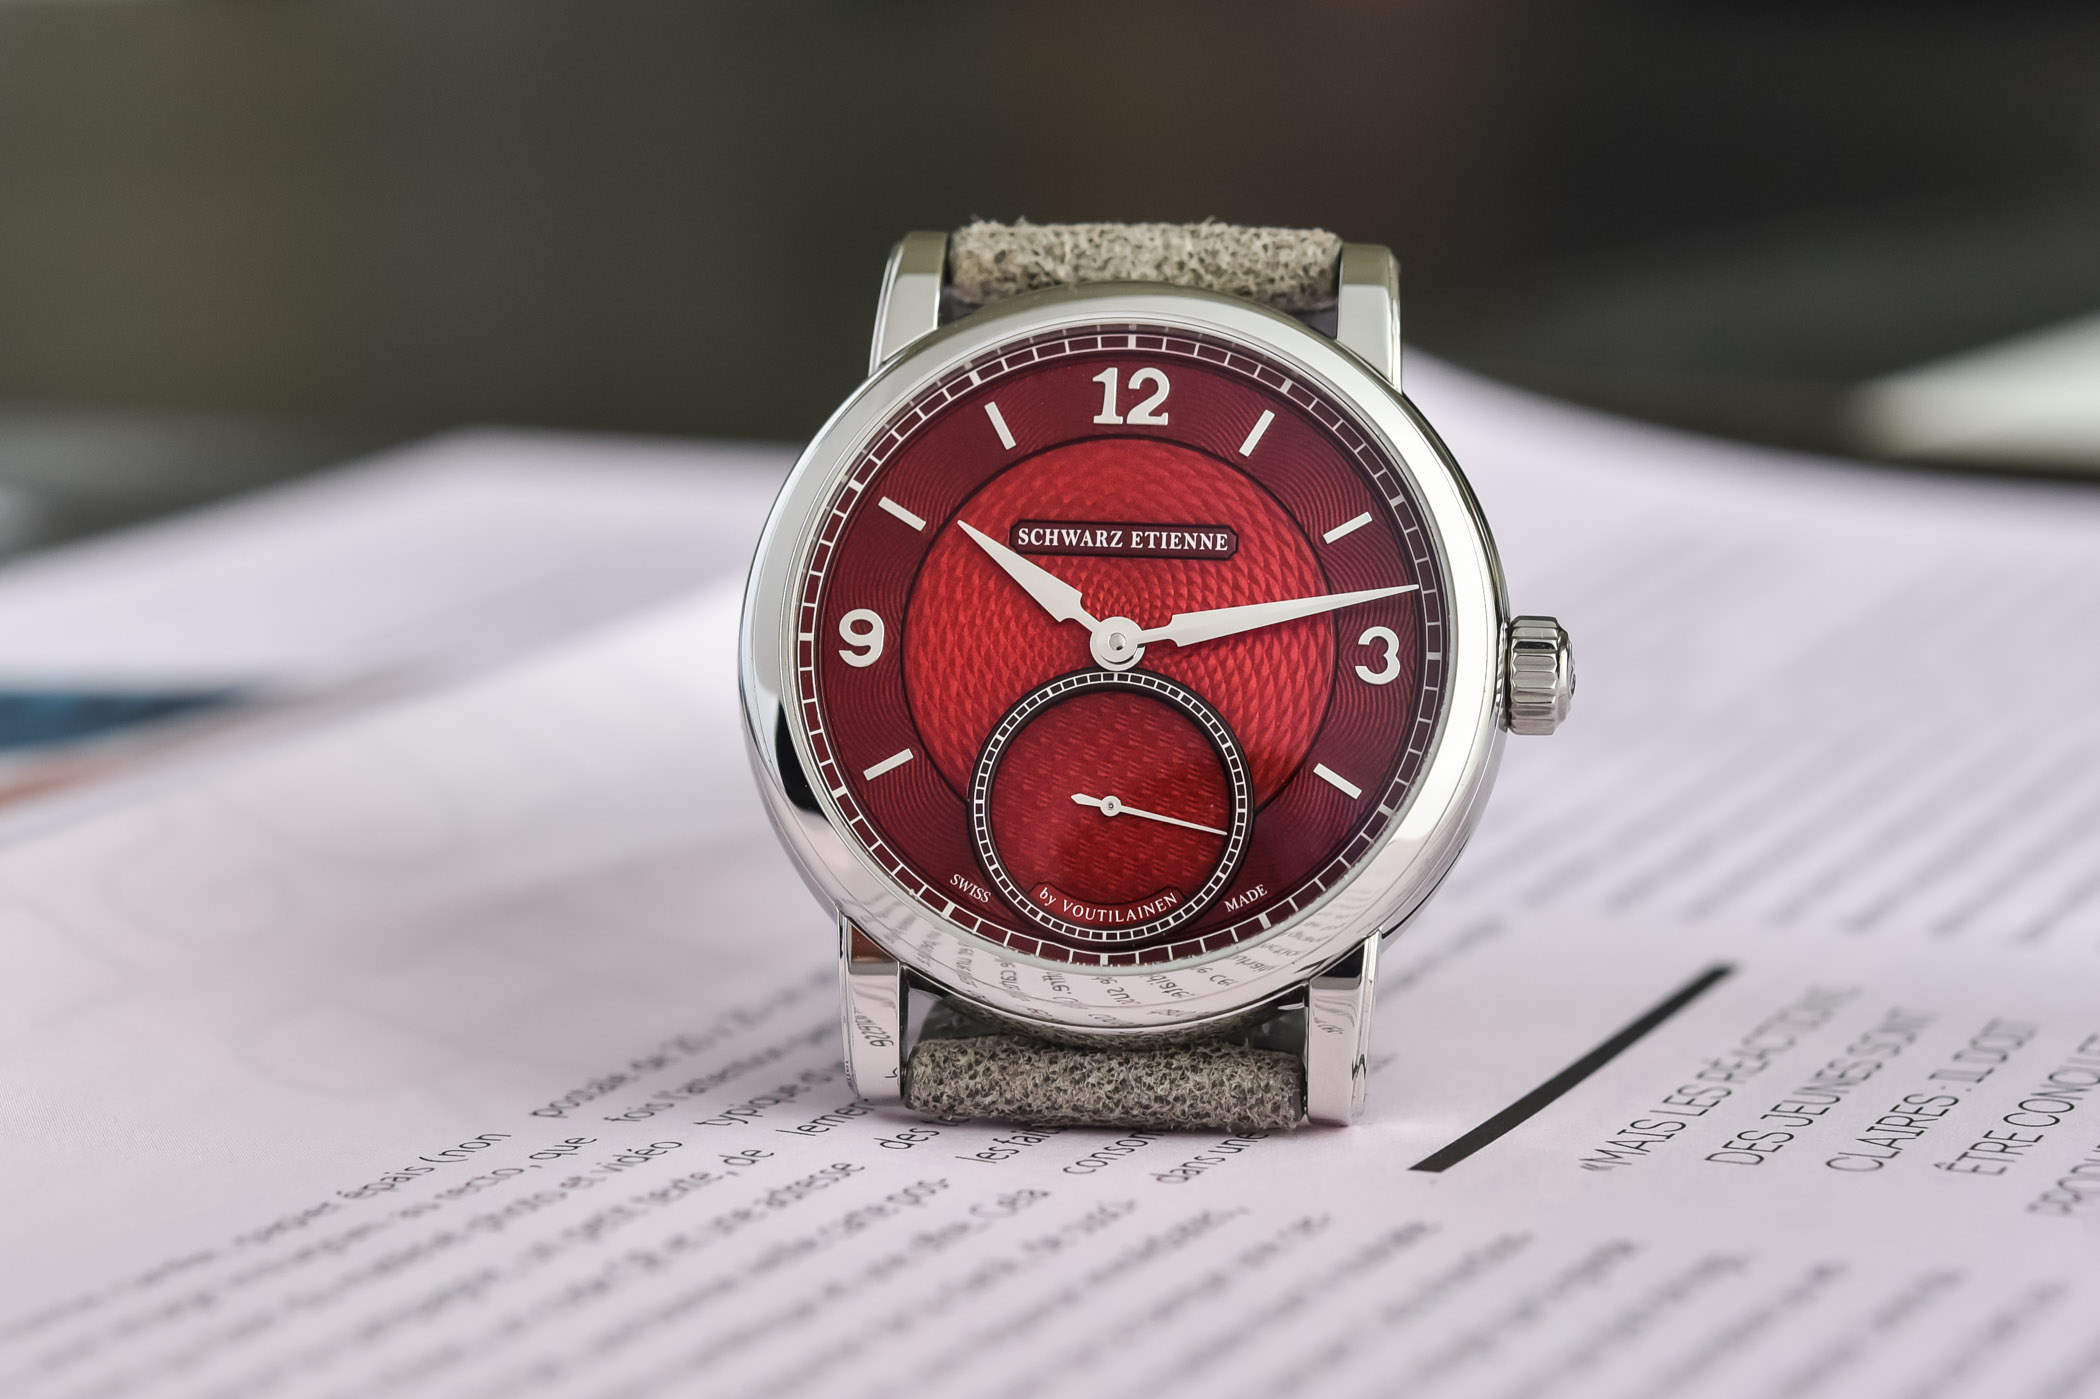 Schwarz Etienne Roma Synergy by Kari Voutilainen Unique Cherry Red Dial